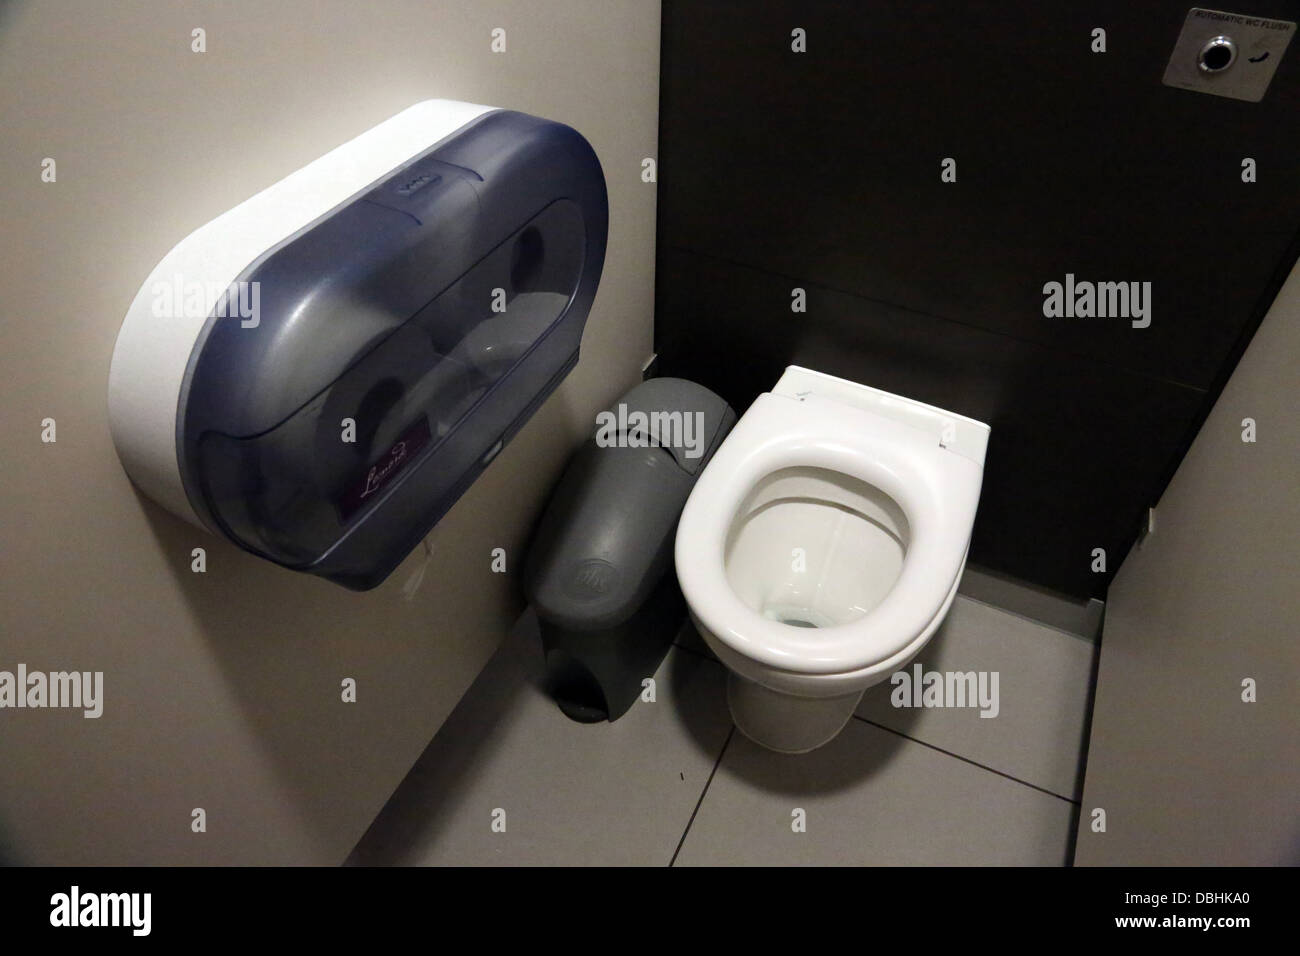 Public Toilet With Automatic Flush At Motorway Service Station England - Stock Image